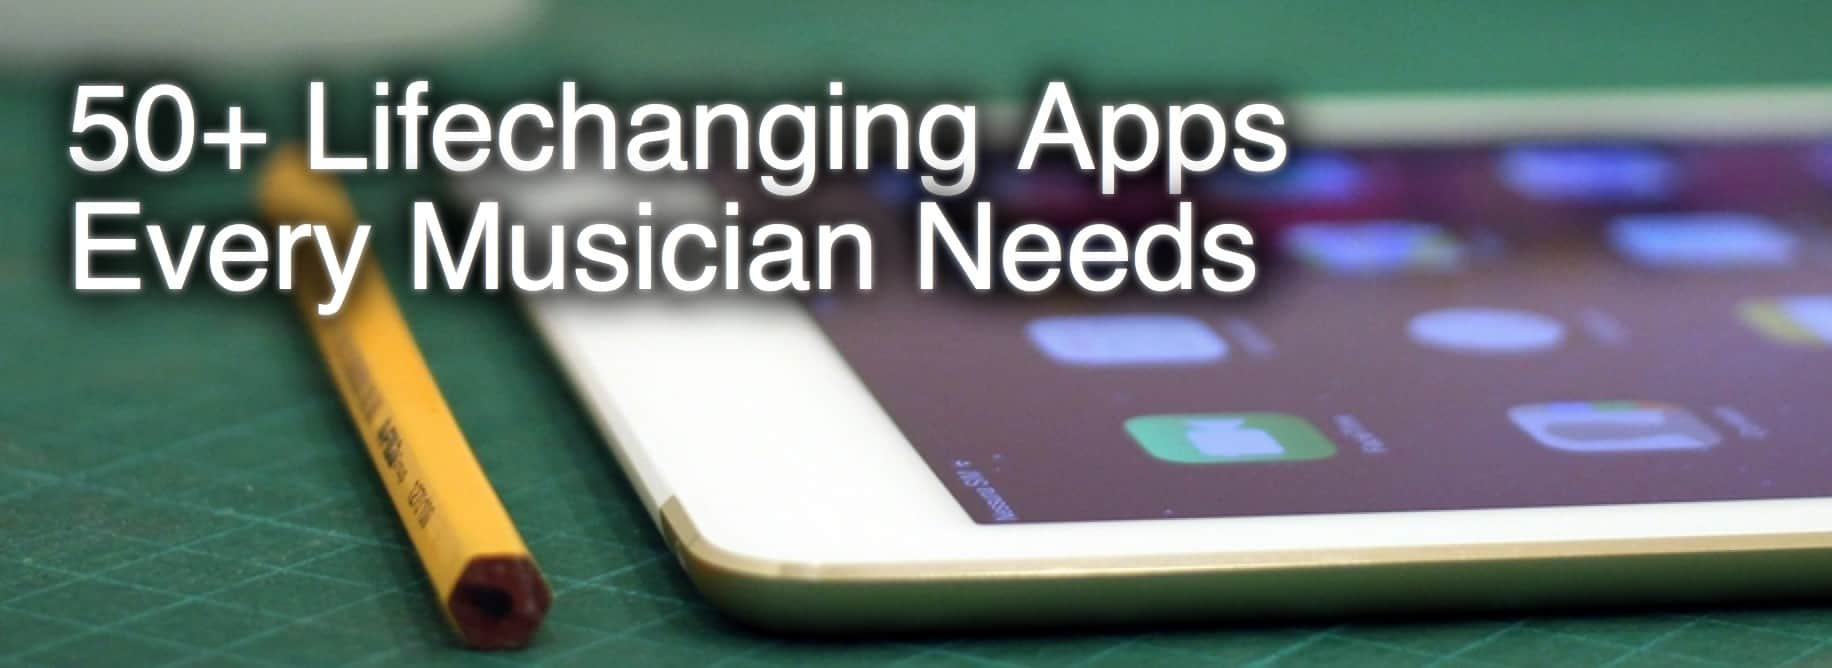 50+ Lifechanging Apps Every Musician Needs